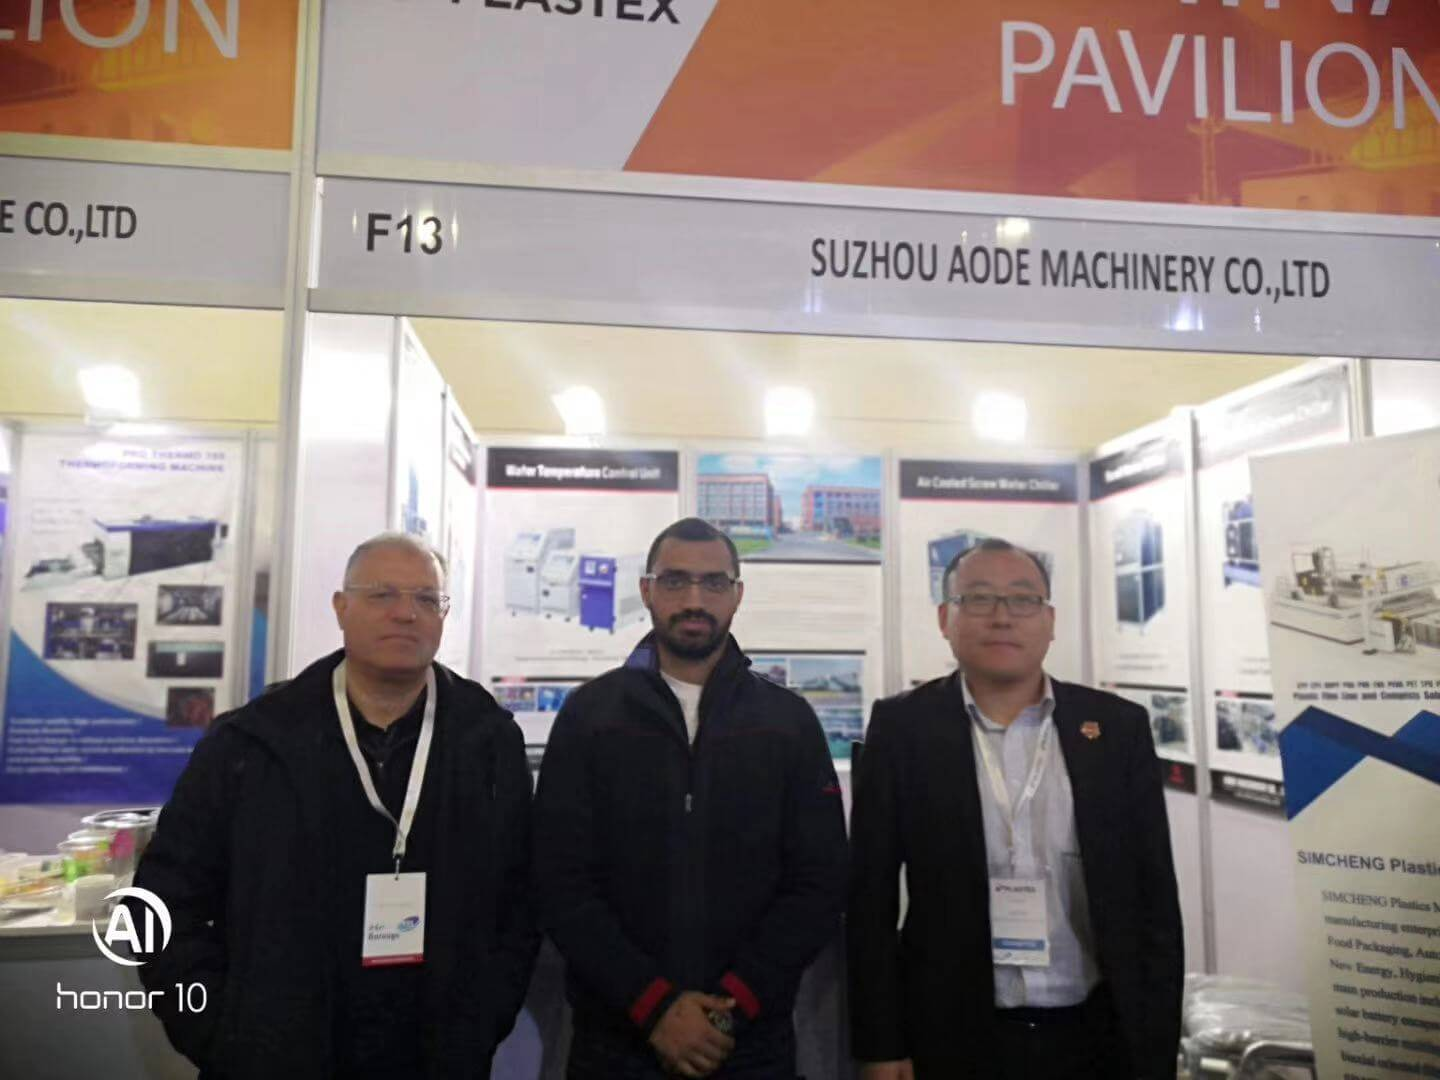 AODE at Egypt International Exhibition Center on 2020.01.09~2020.01.12